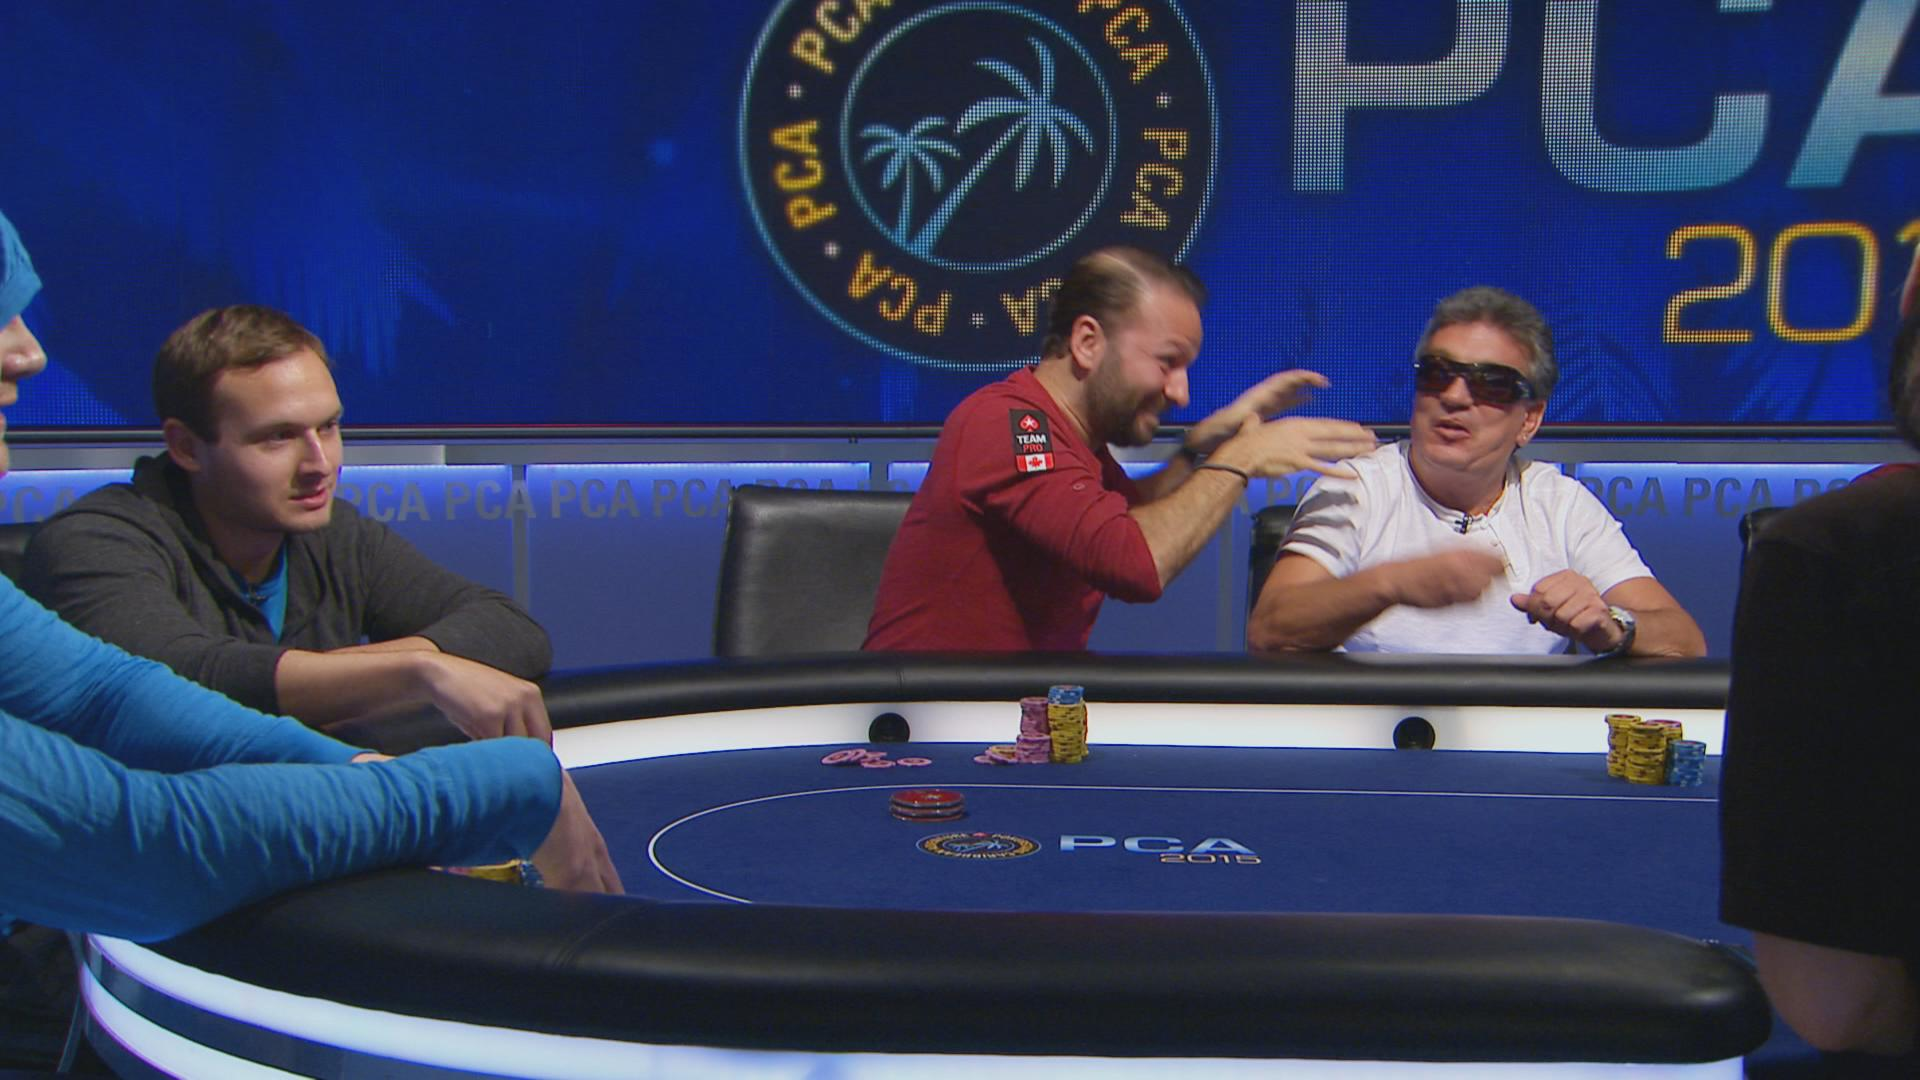 PCA 2015 - Main Event, Episode 2